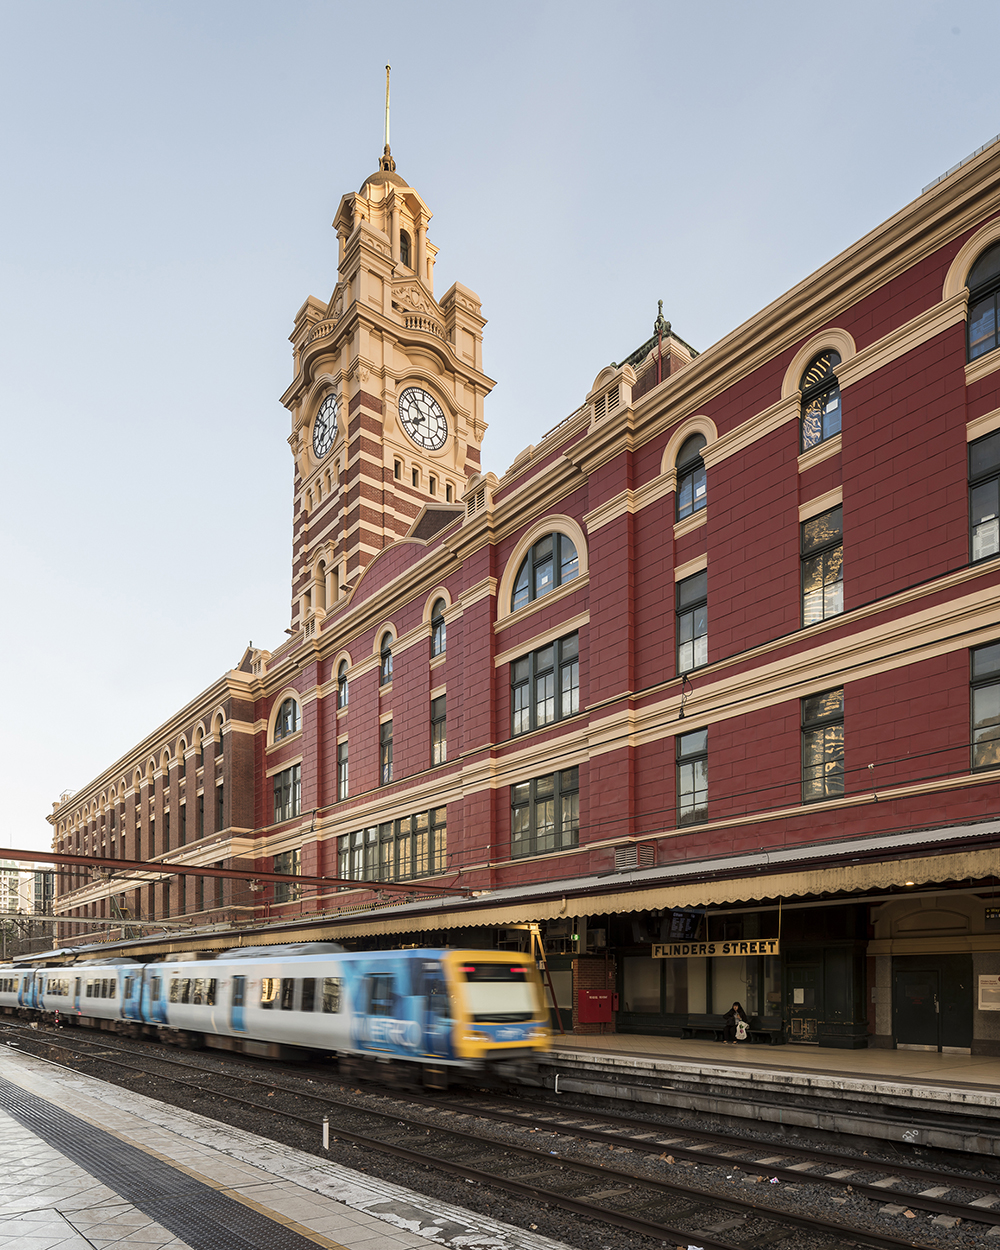 Dulux Colour Awards 2019 Commercial and Multi-Residential Exterior Winner Project _ Flinders Street External Works (VIC) by Lovell Chen Photographer _ Peter Glenane, Martin Leitch, Jenny Bolis and Kai Chen